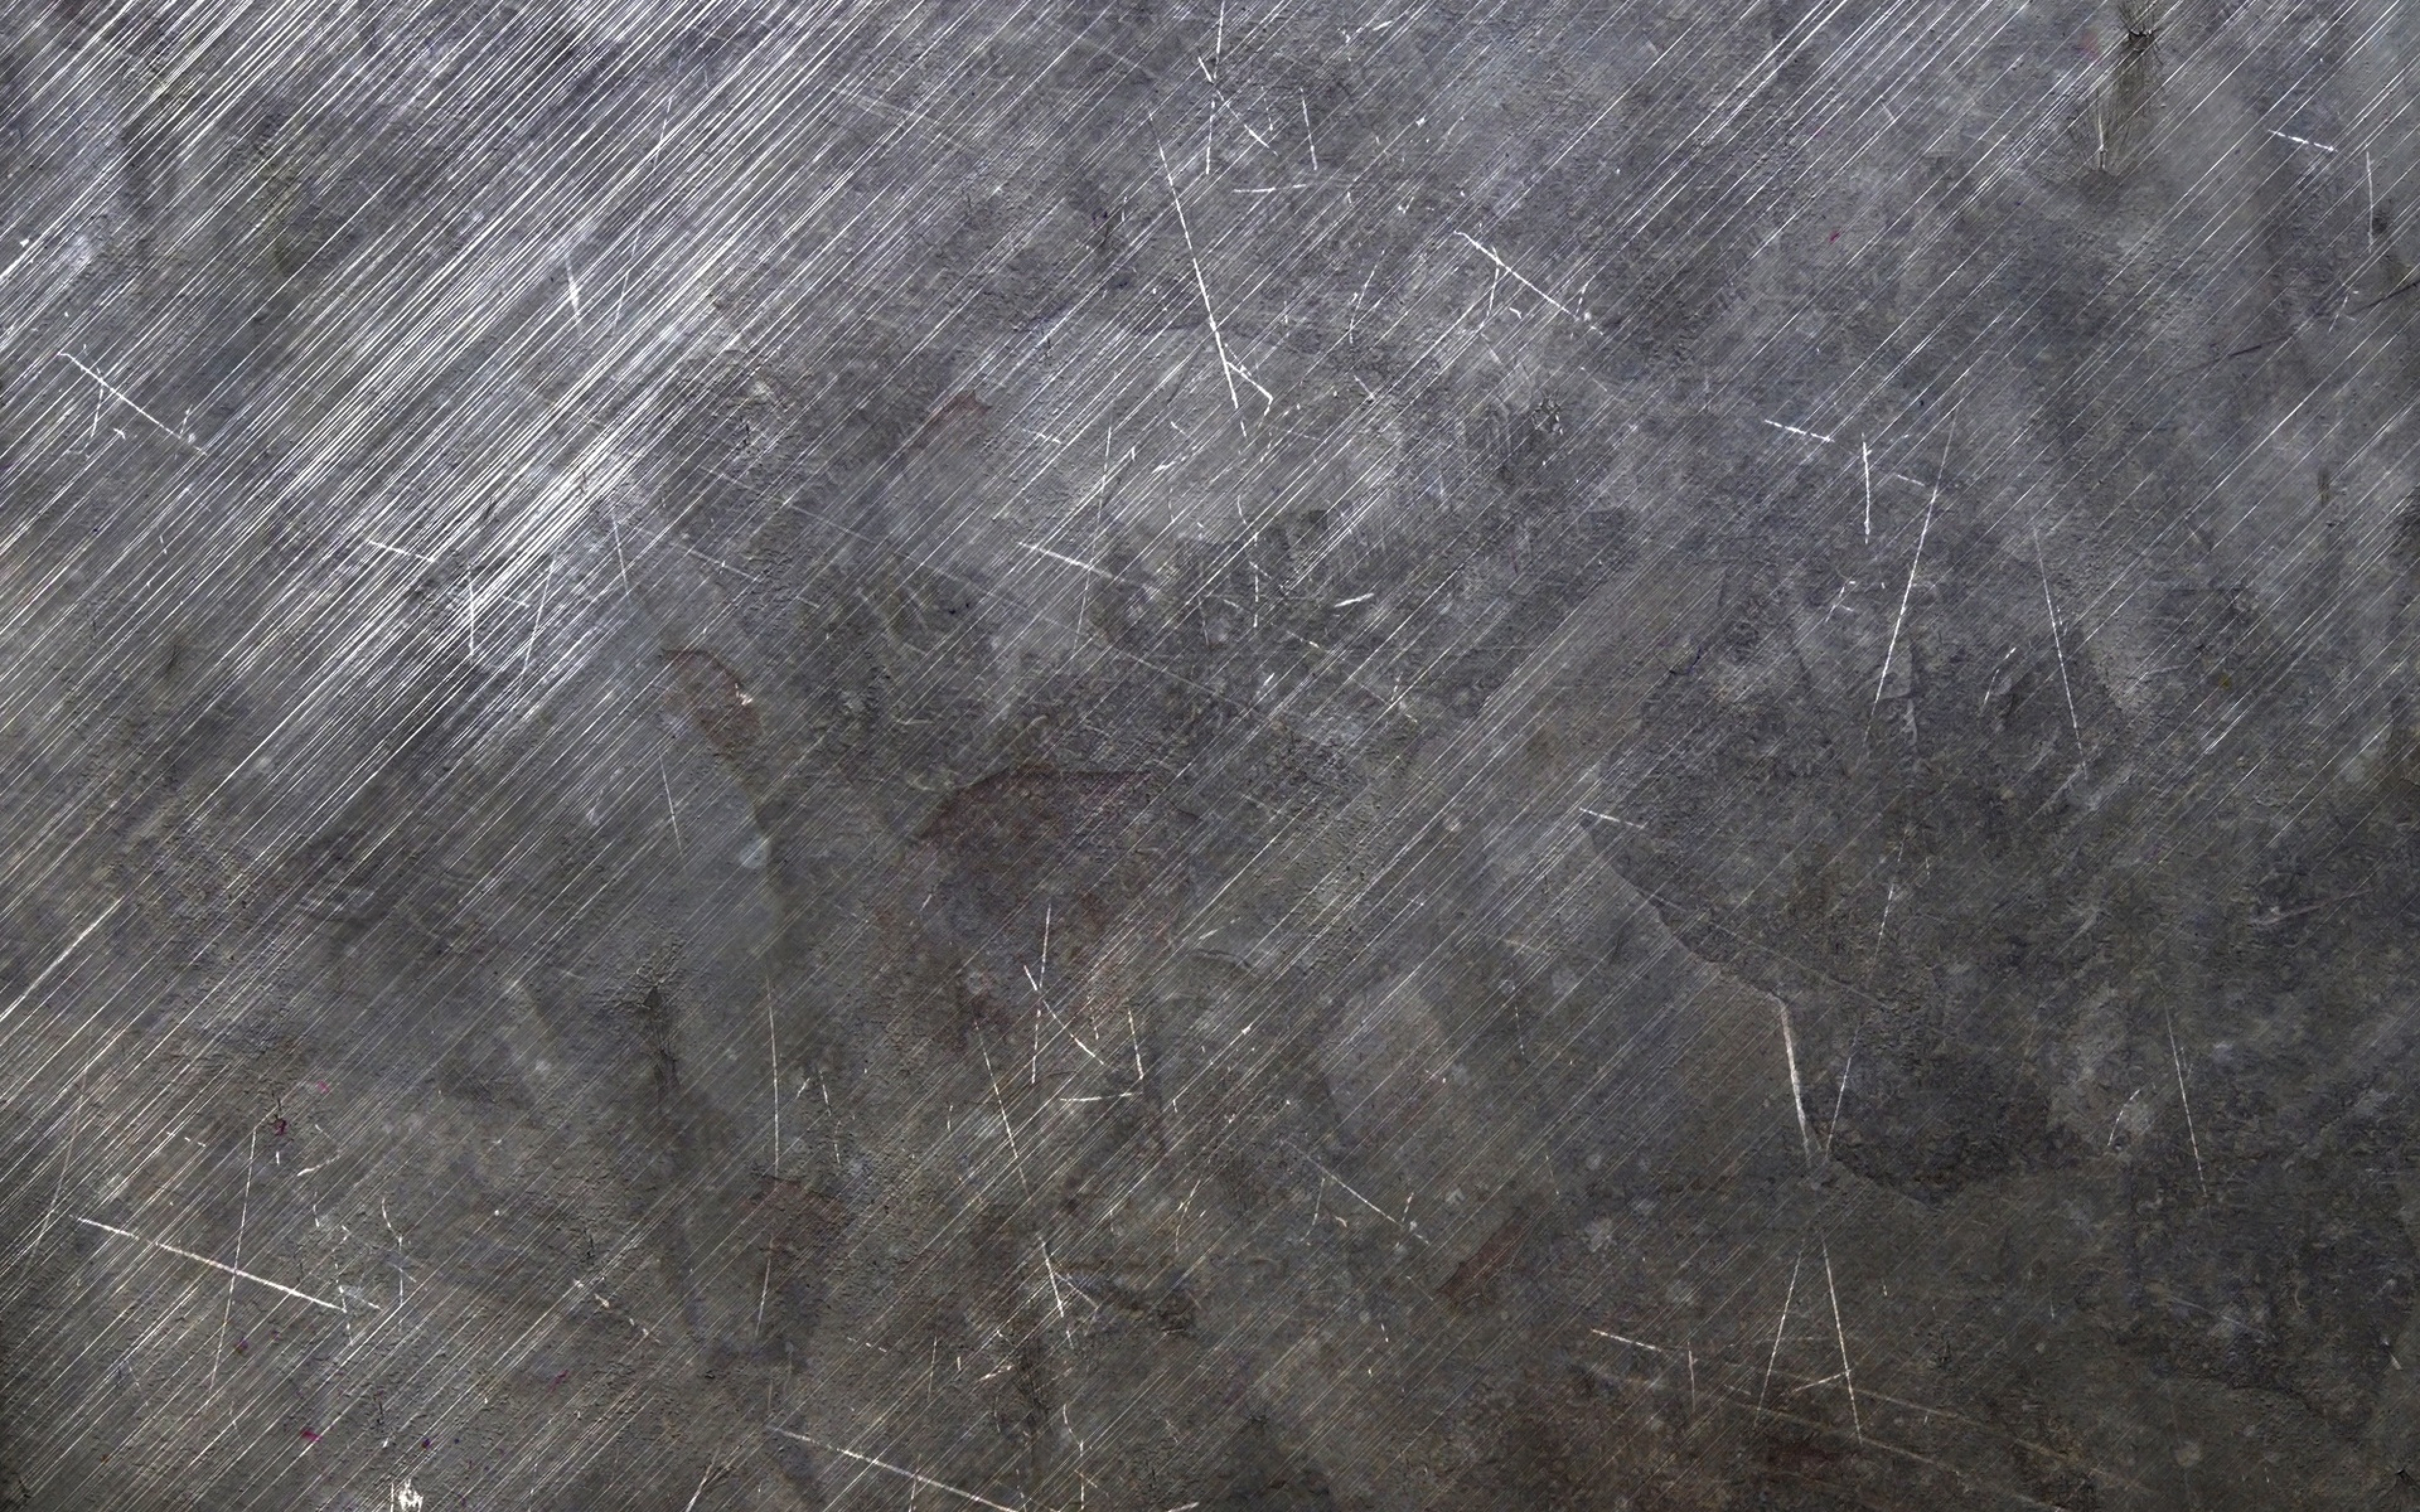 Gray scratched metal ppt background #3824